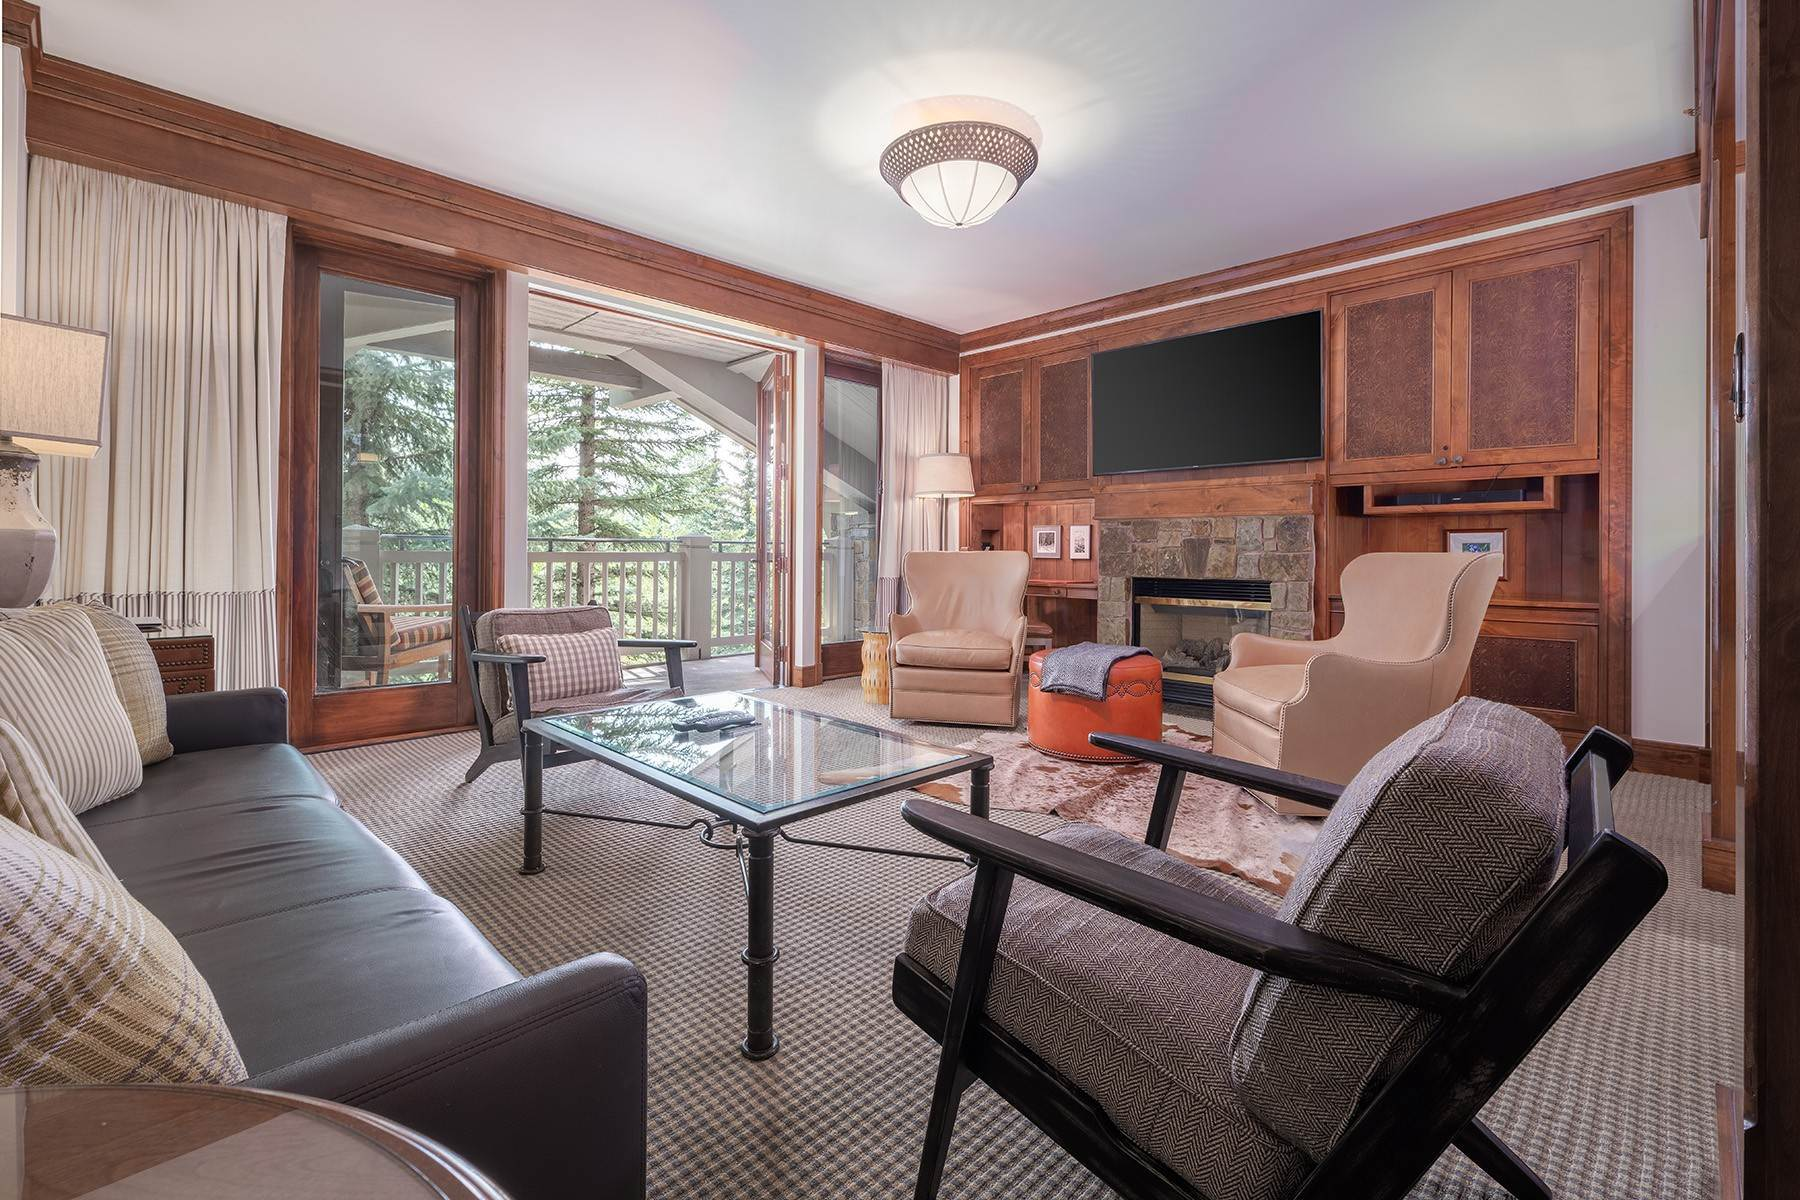 Condominiums for Sale at Desirable Four Seasons Private Residence 7680 Granite Loop Road, #654 Teton Village, Wyoming 83025 United States